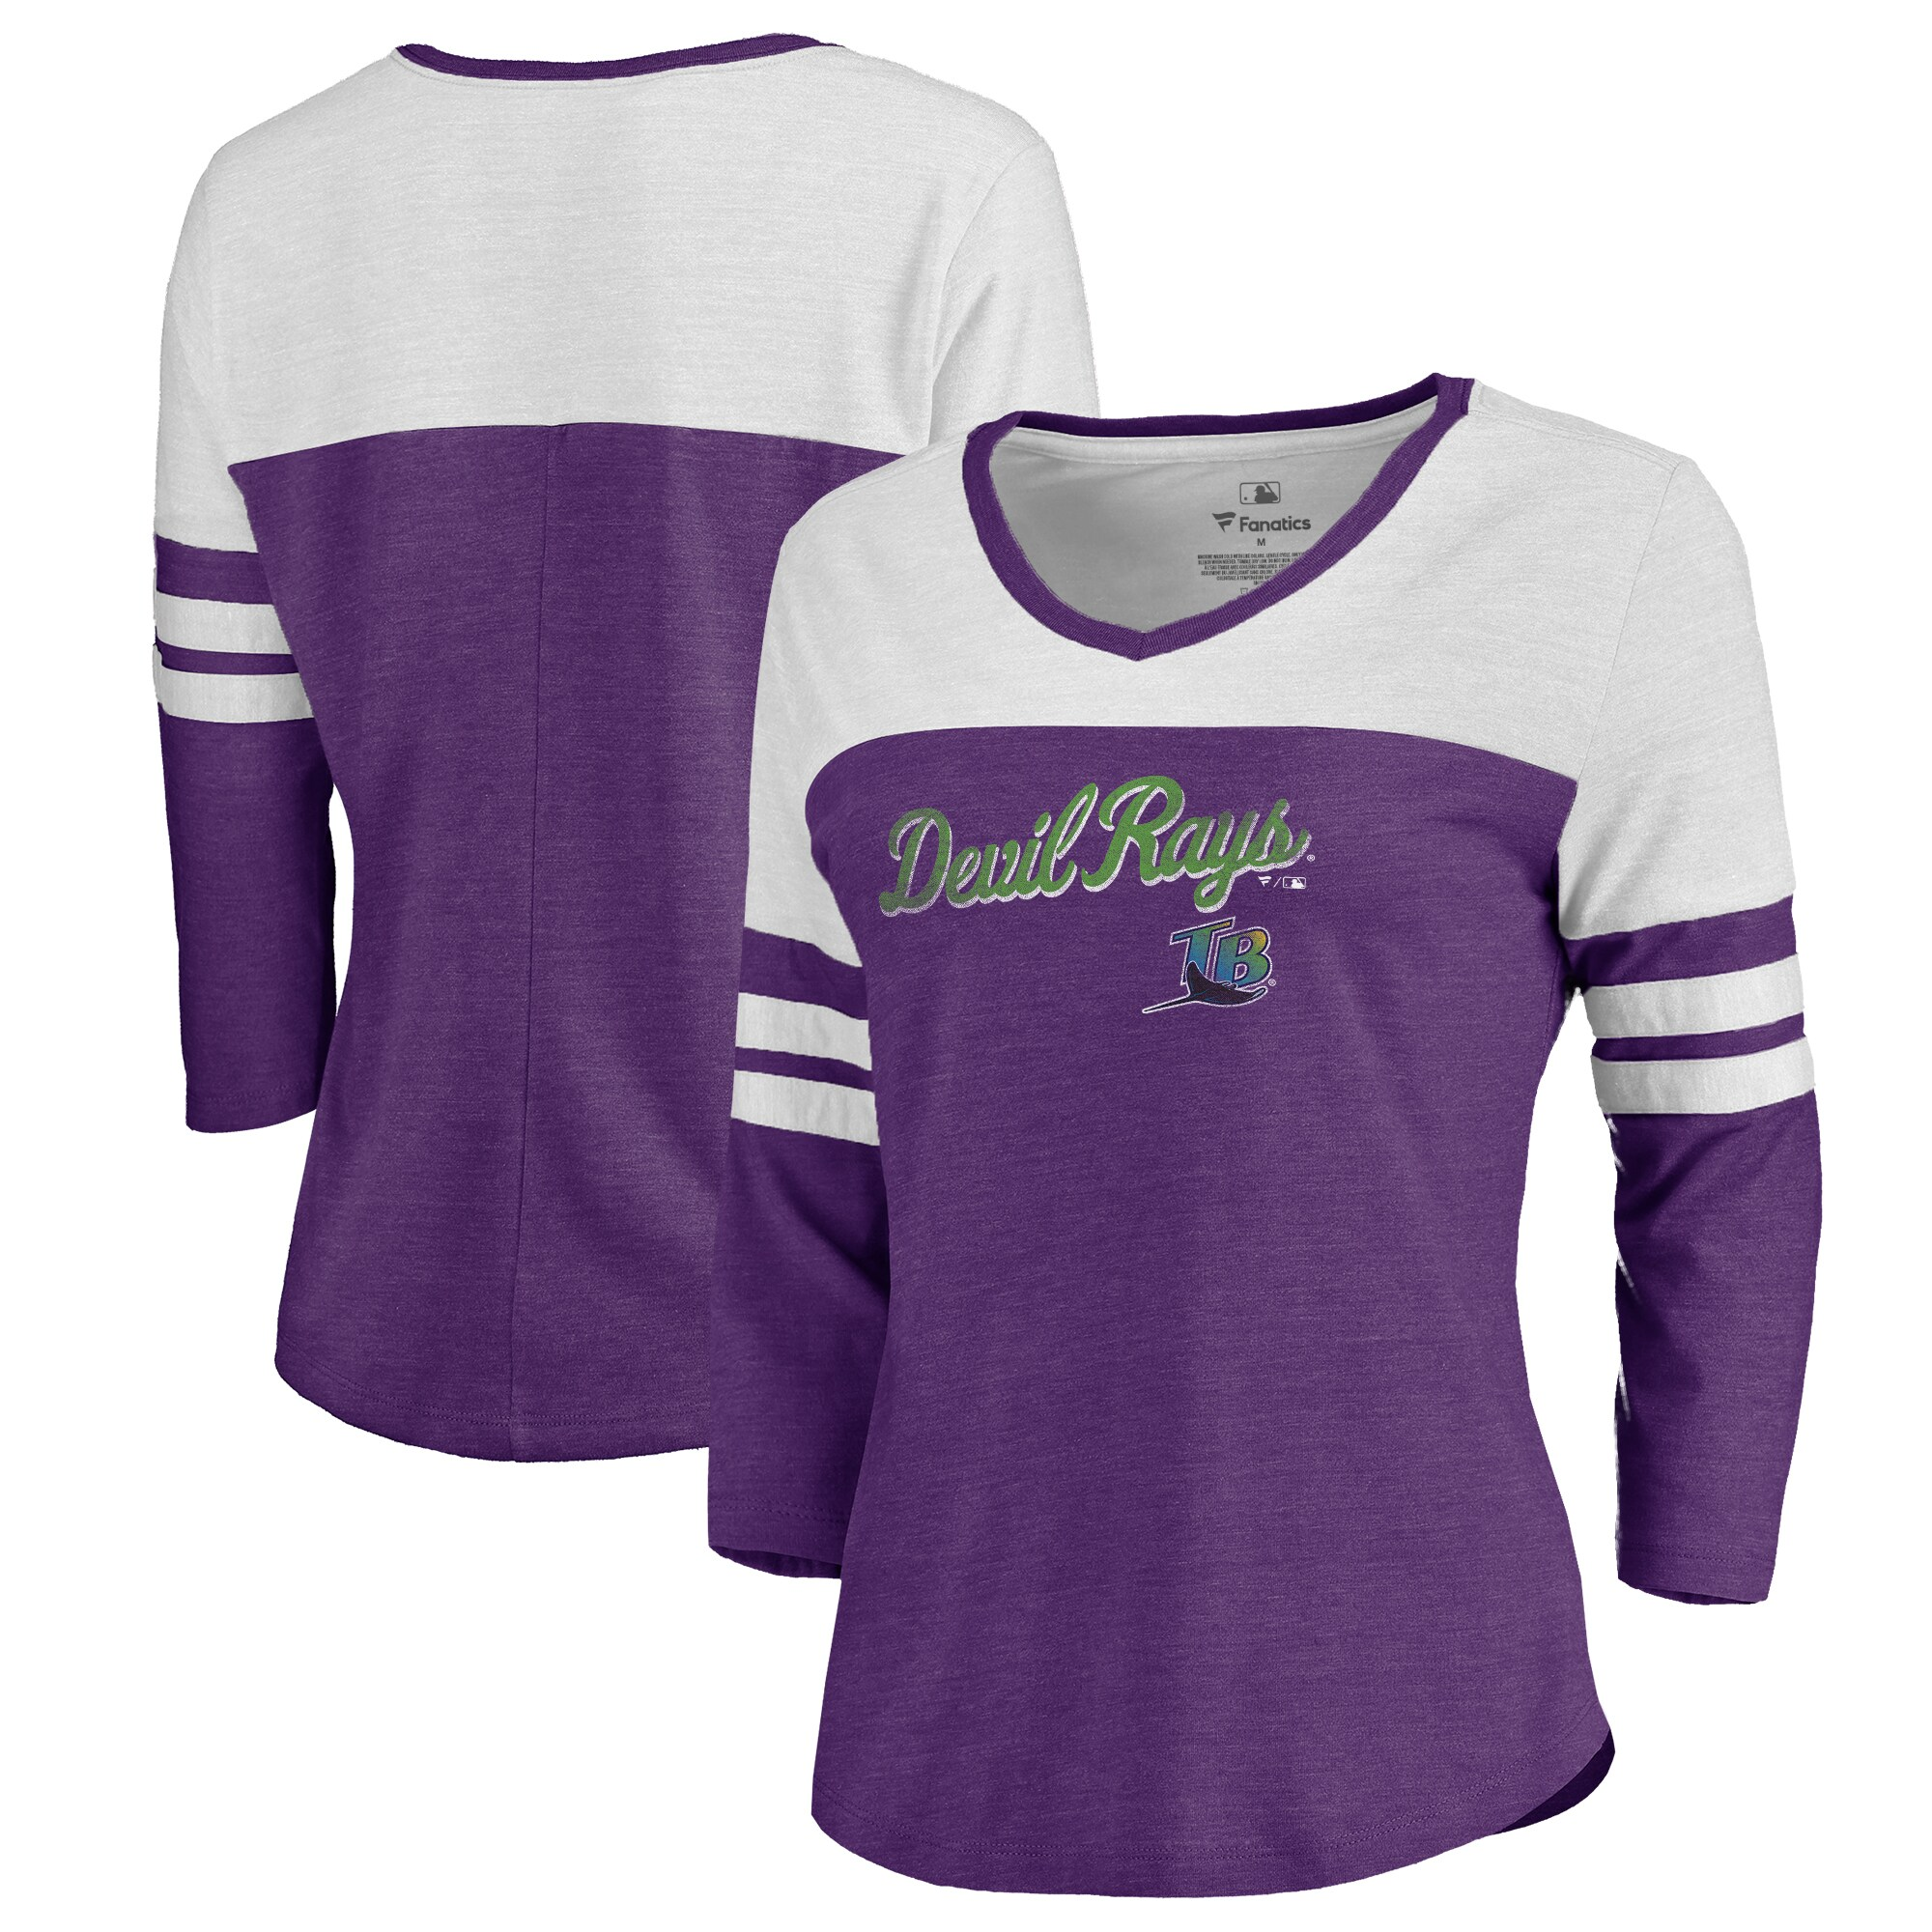 Fanatics Branded Tampa Bay Rays Women's Purple Rising Script Color Block 3/4 Sleeve Tri-Blend T-Shirt